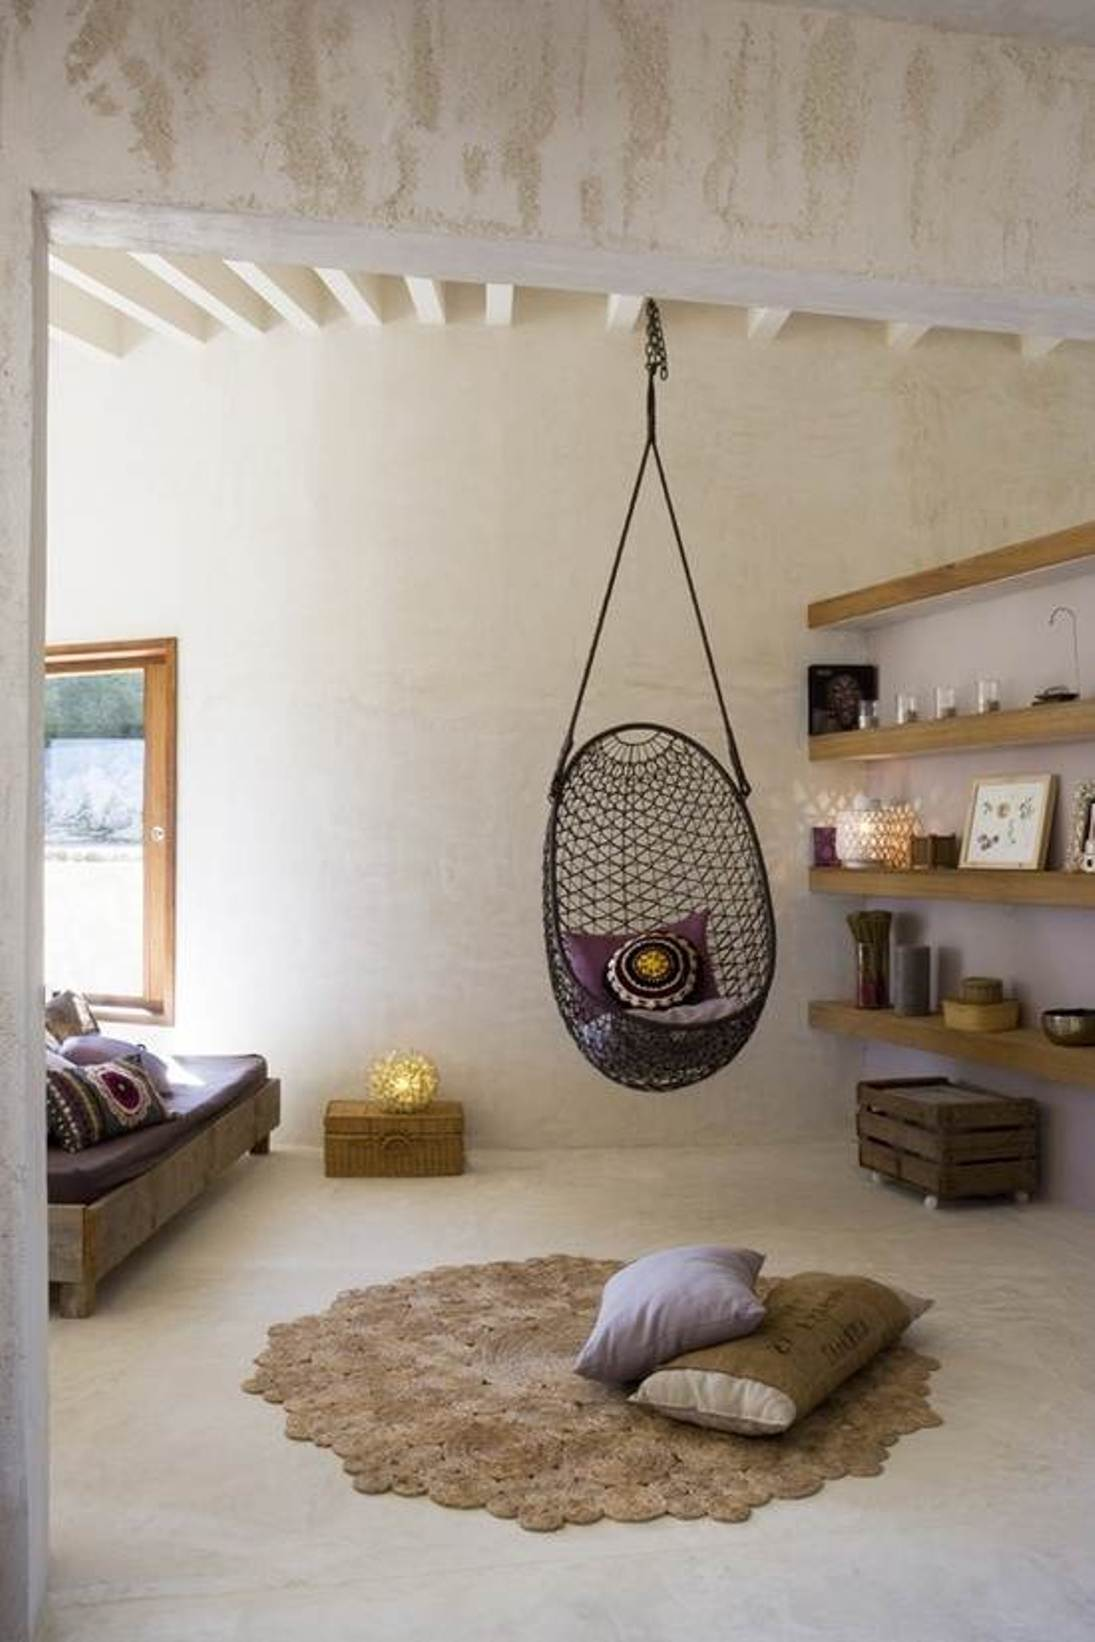 Hanging Chairs For Bedrooms 14 19 Internist Dr Horn De